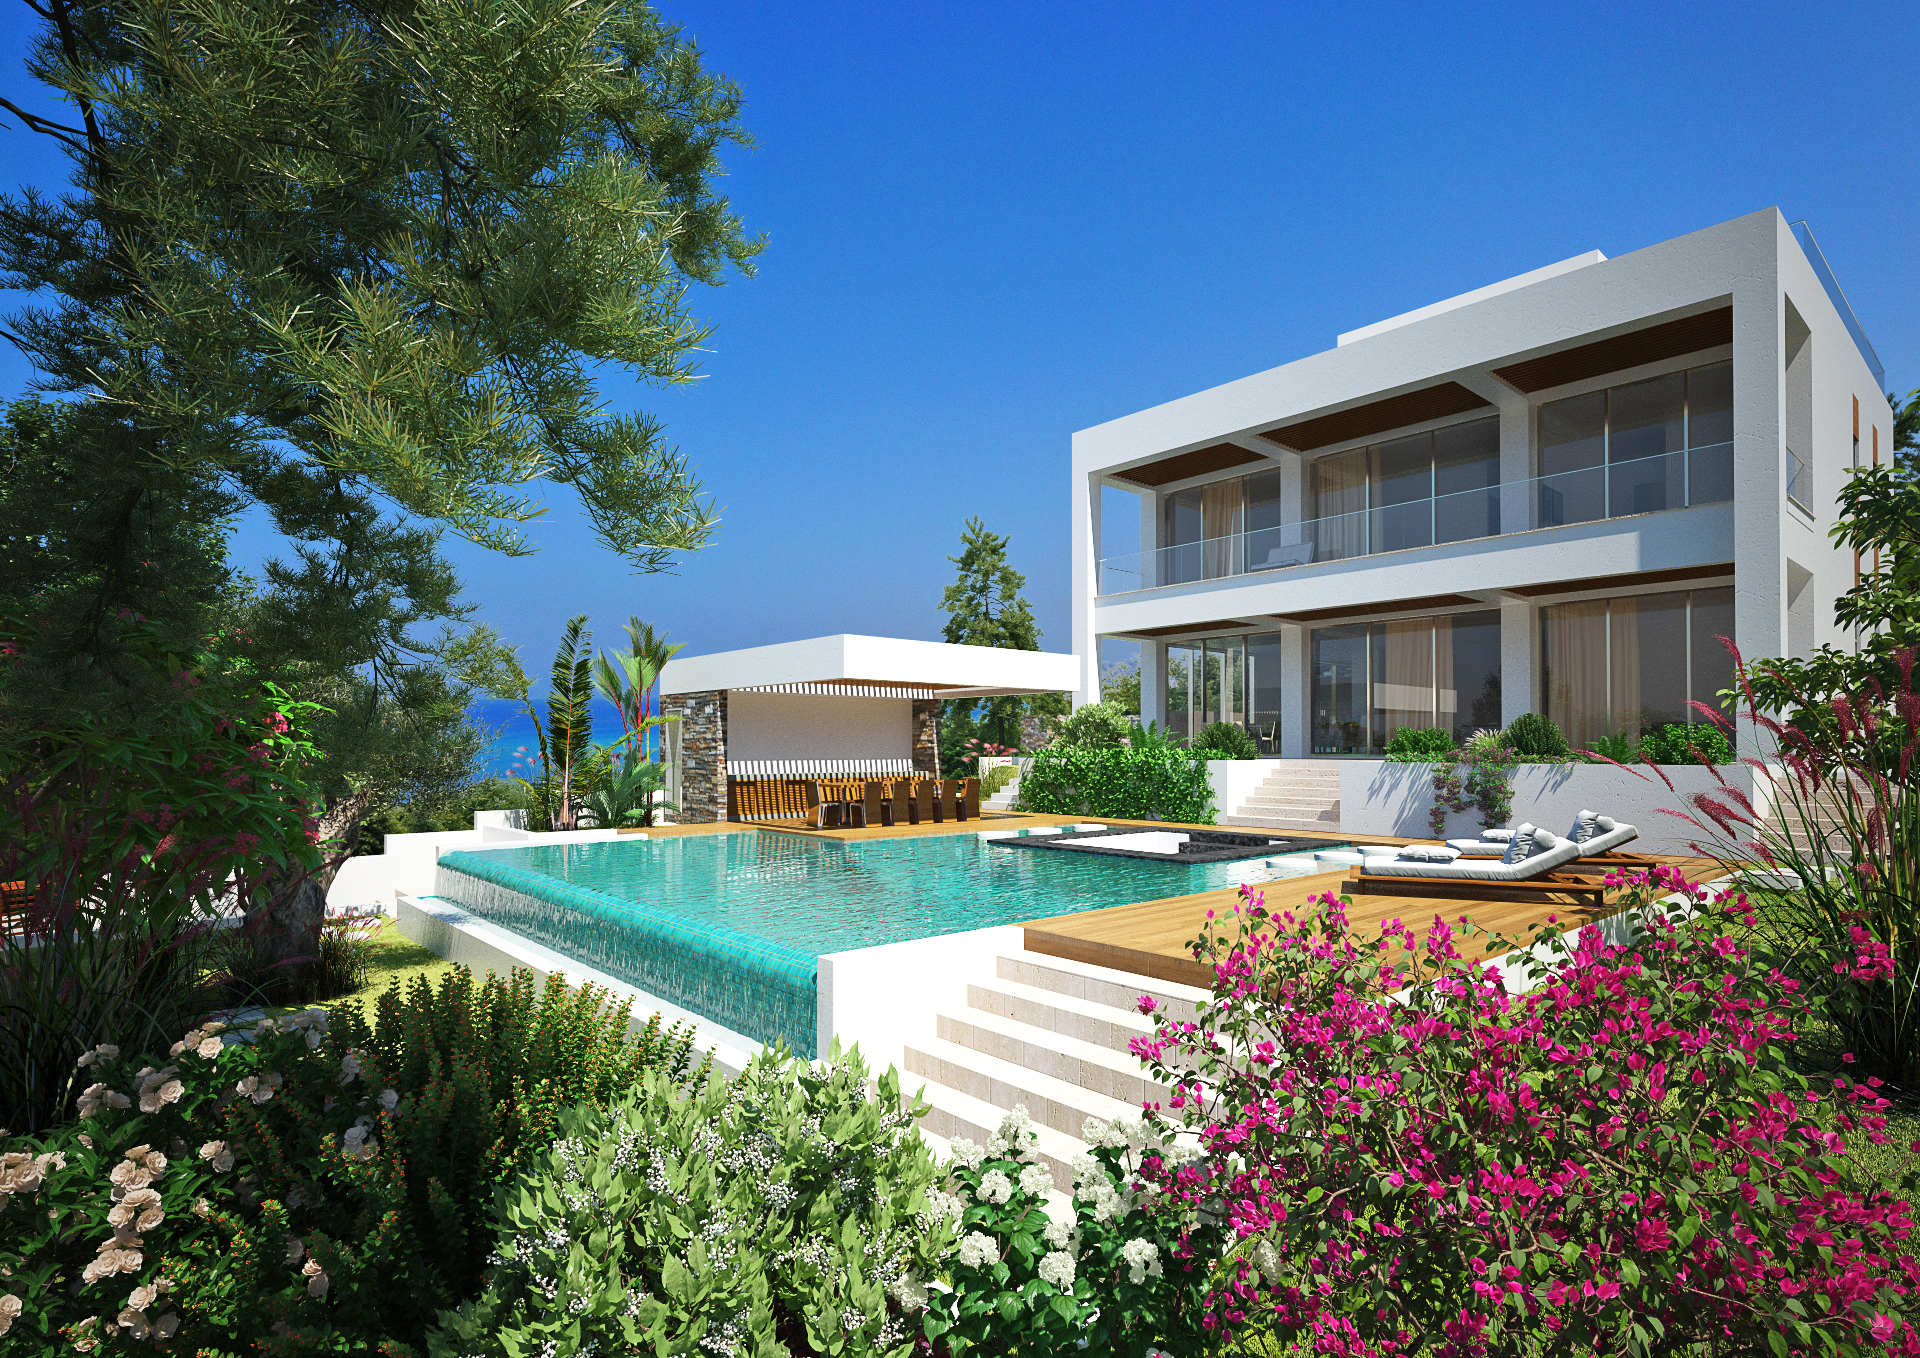 Real Estate Opportunities in Cyprus through Aristo Developers